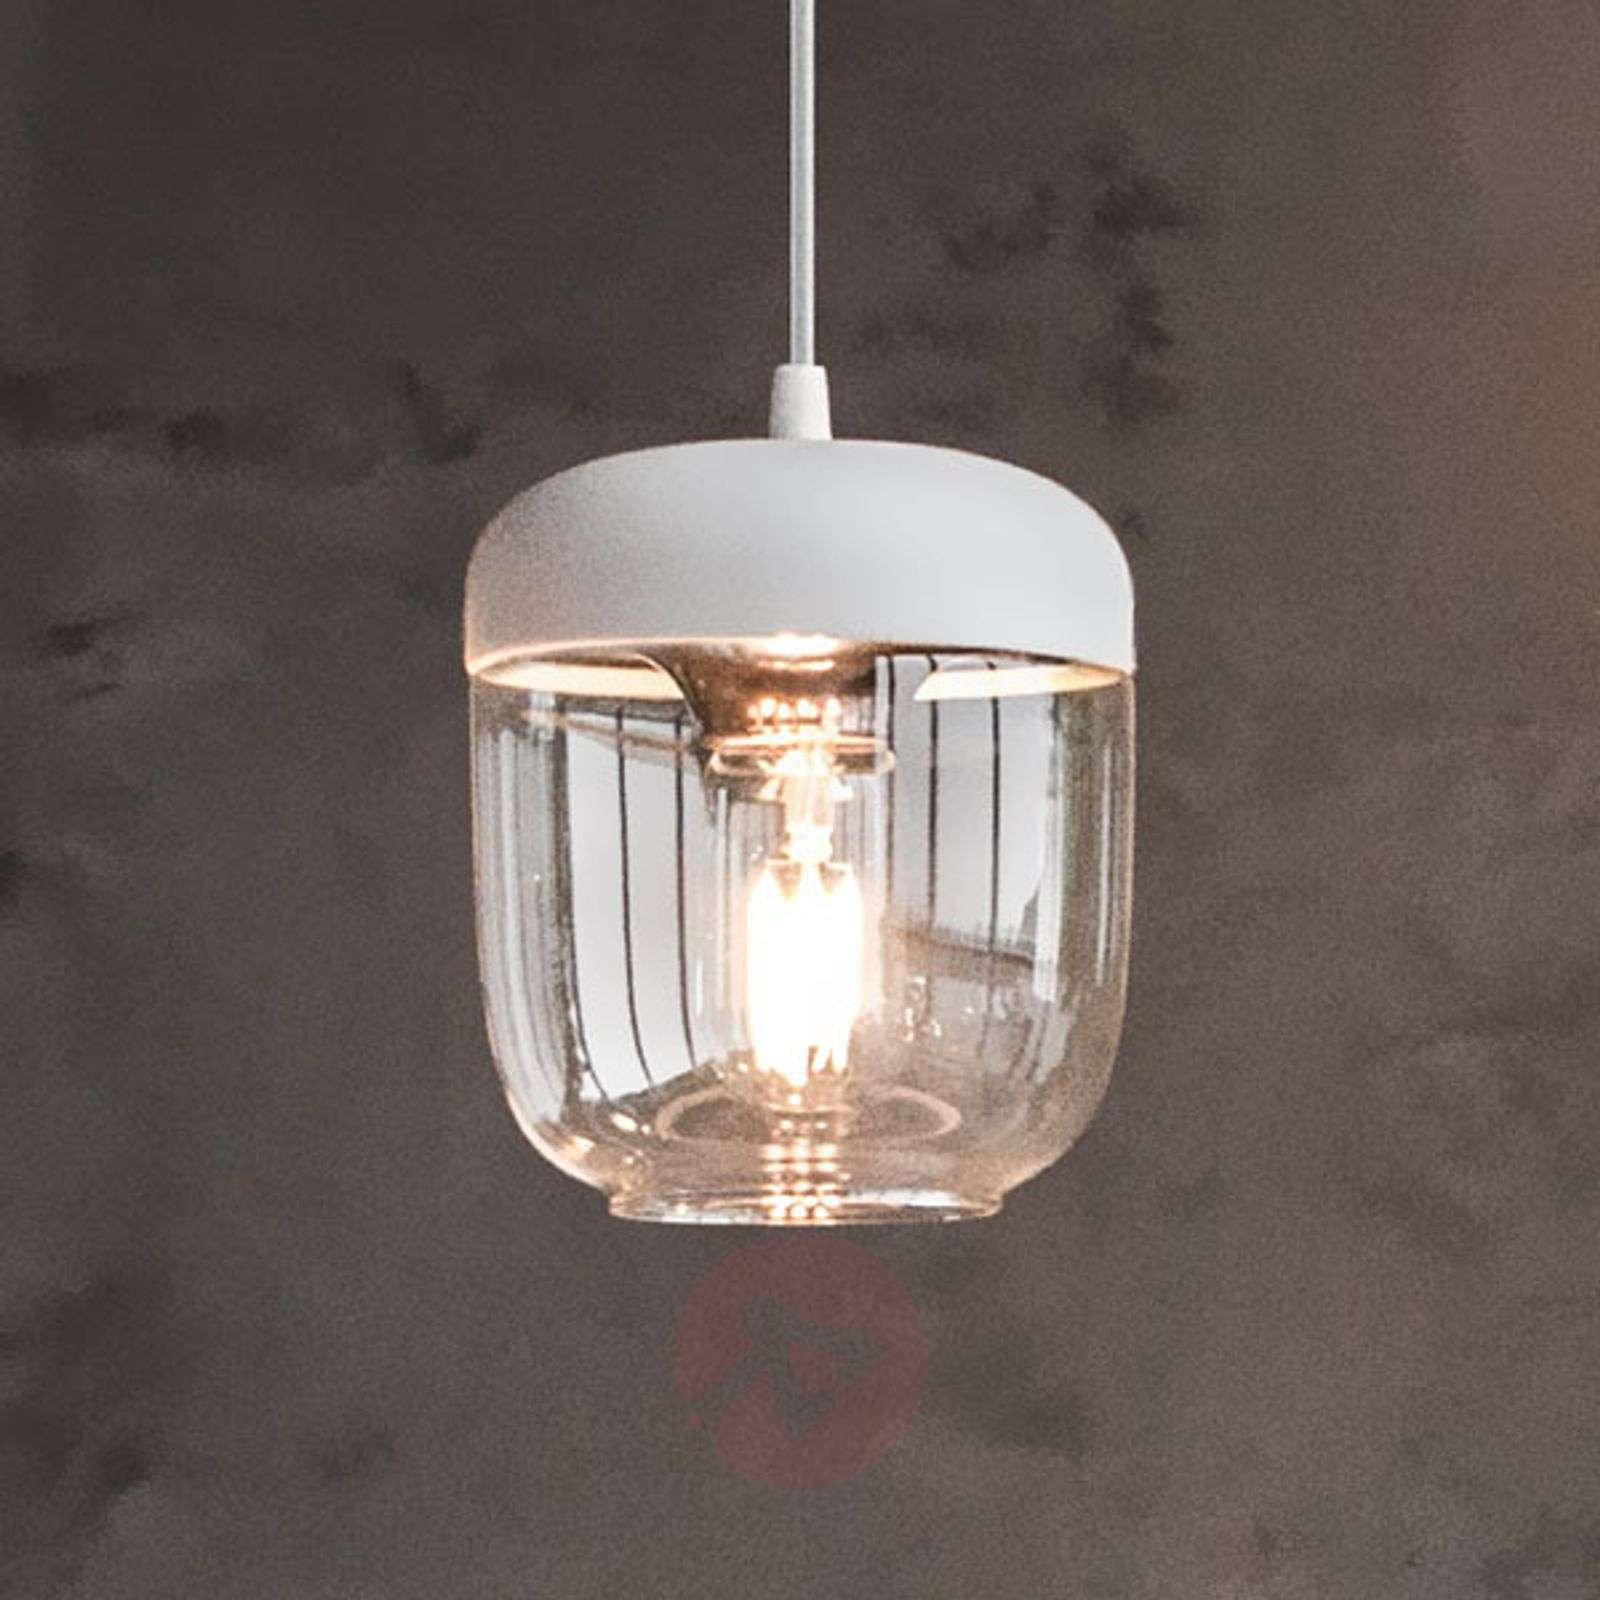 UMAGE Acorn hanging light white/copper-9521076-01